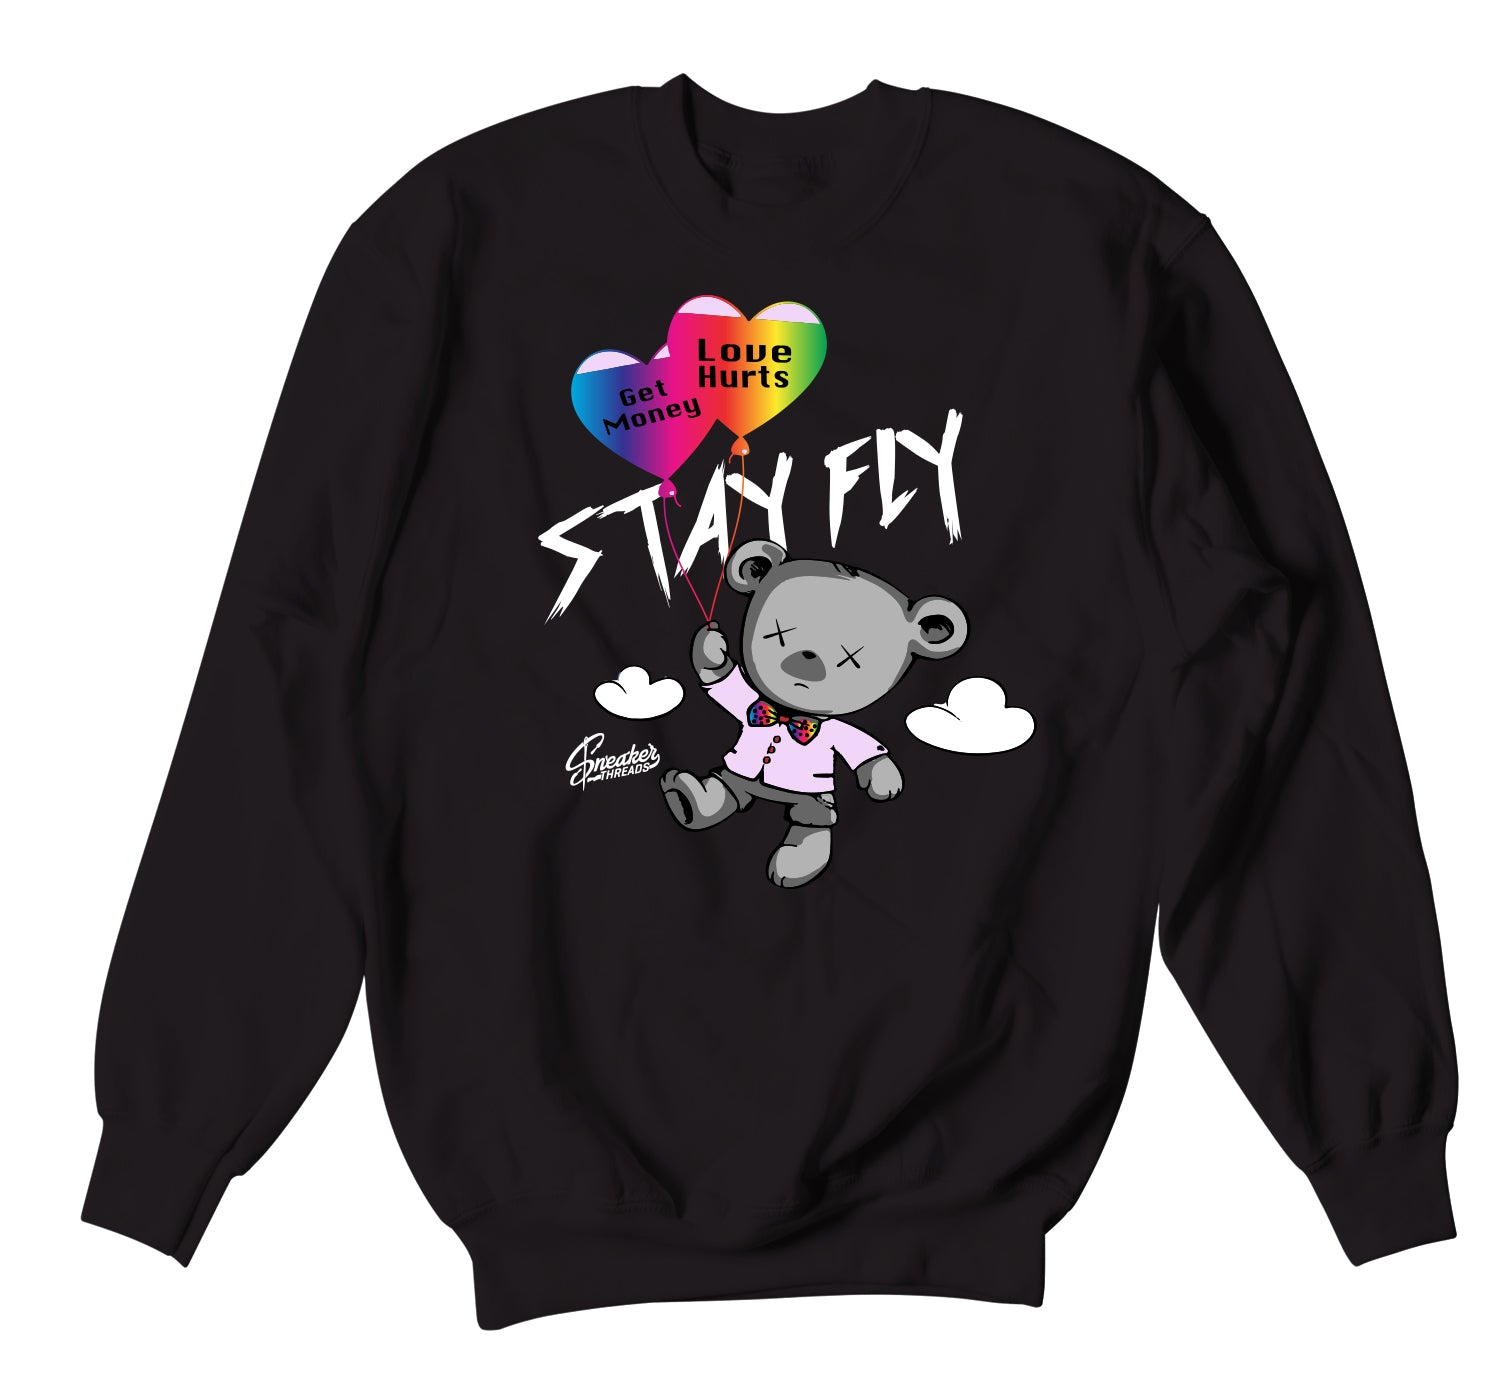 Jordan 1 Balvin Sweater - Money Over Love - Black